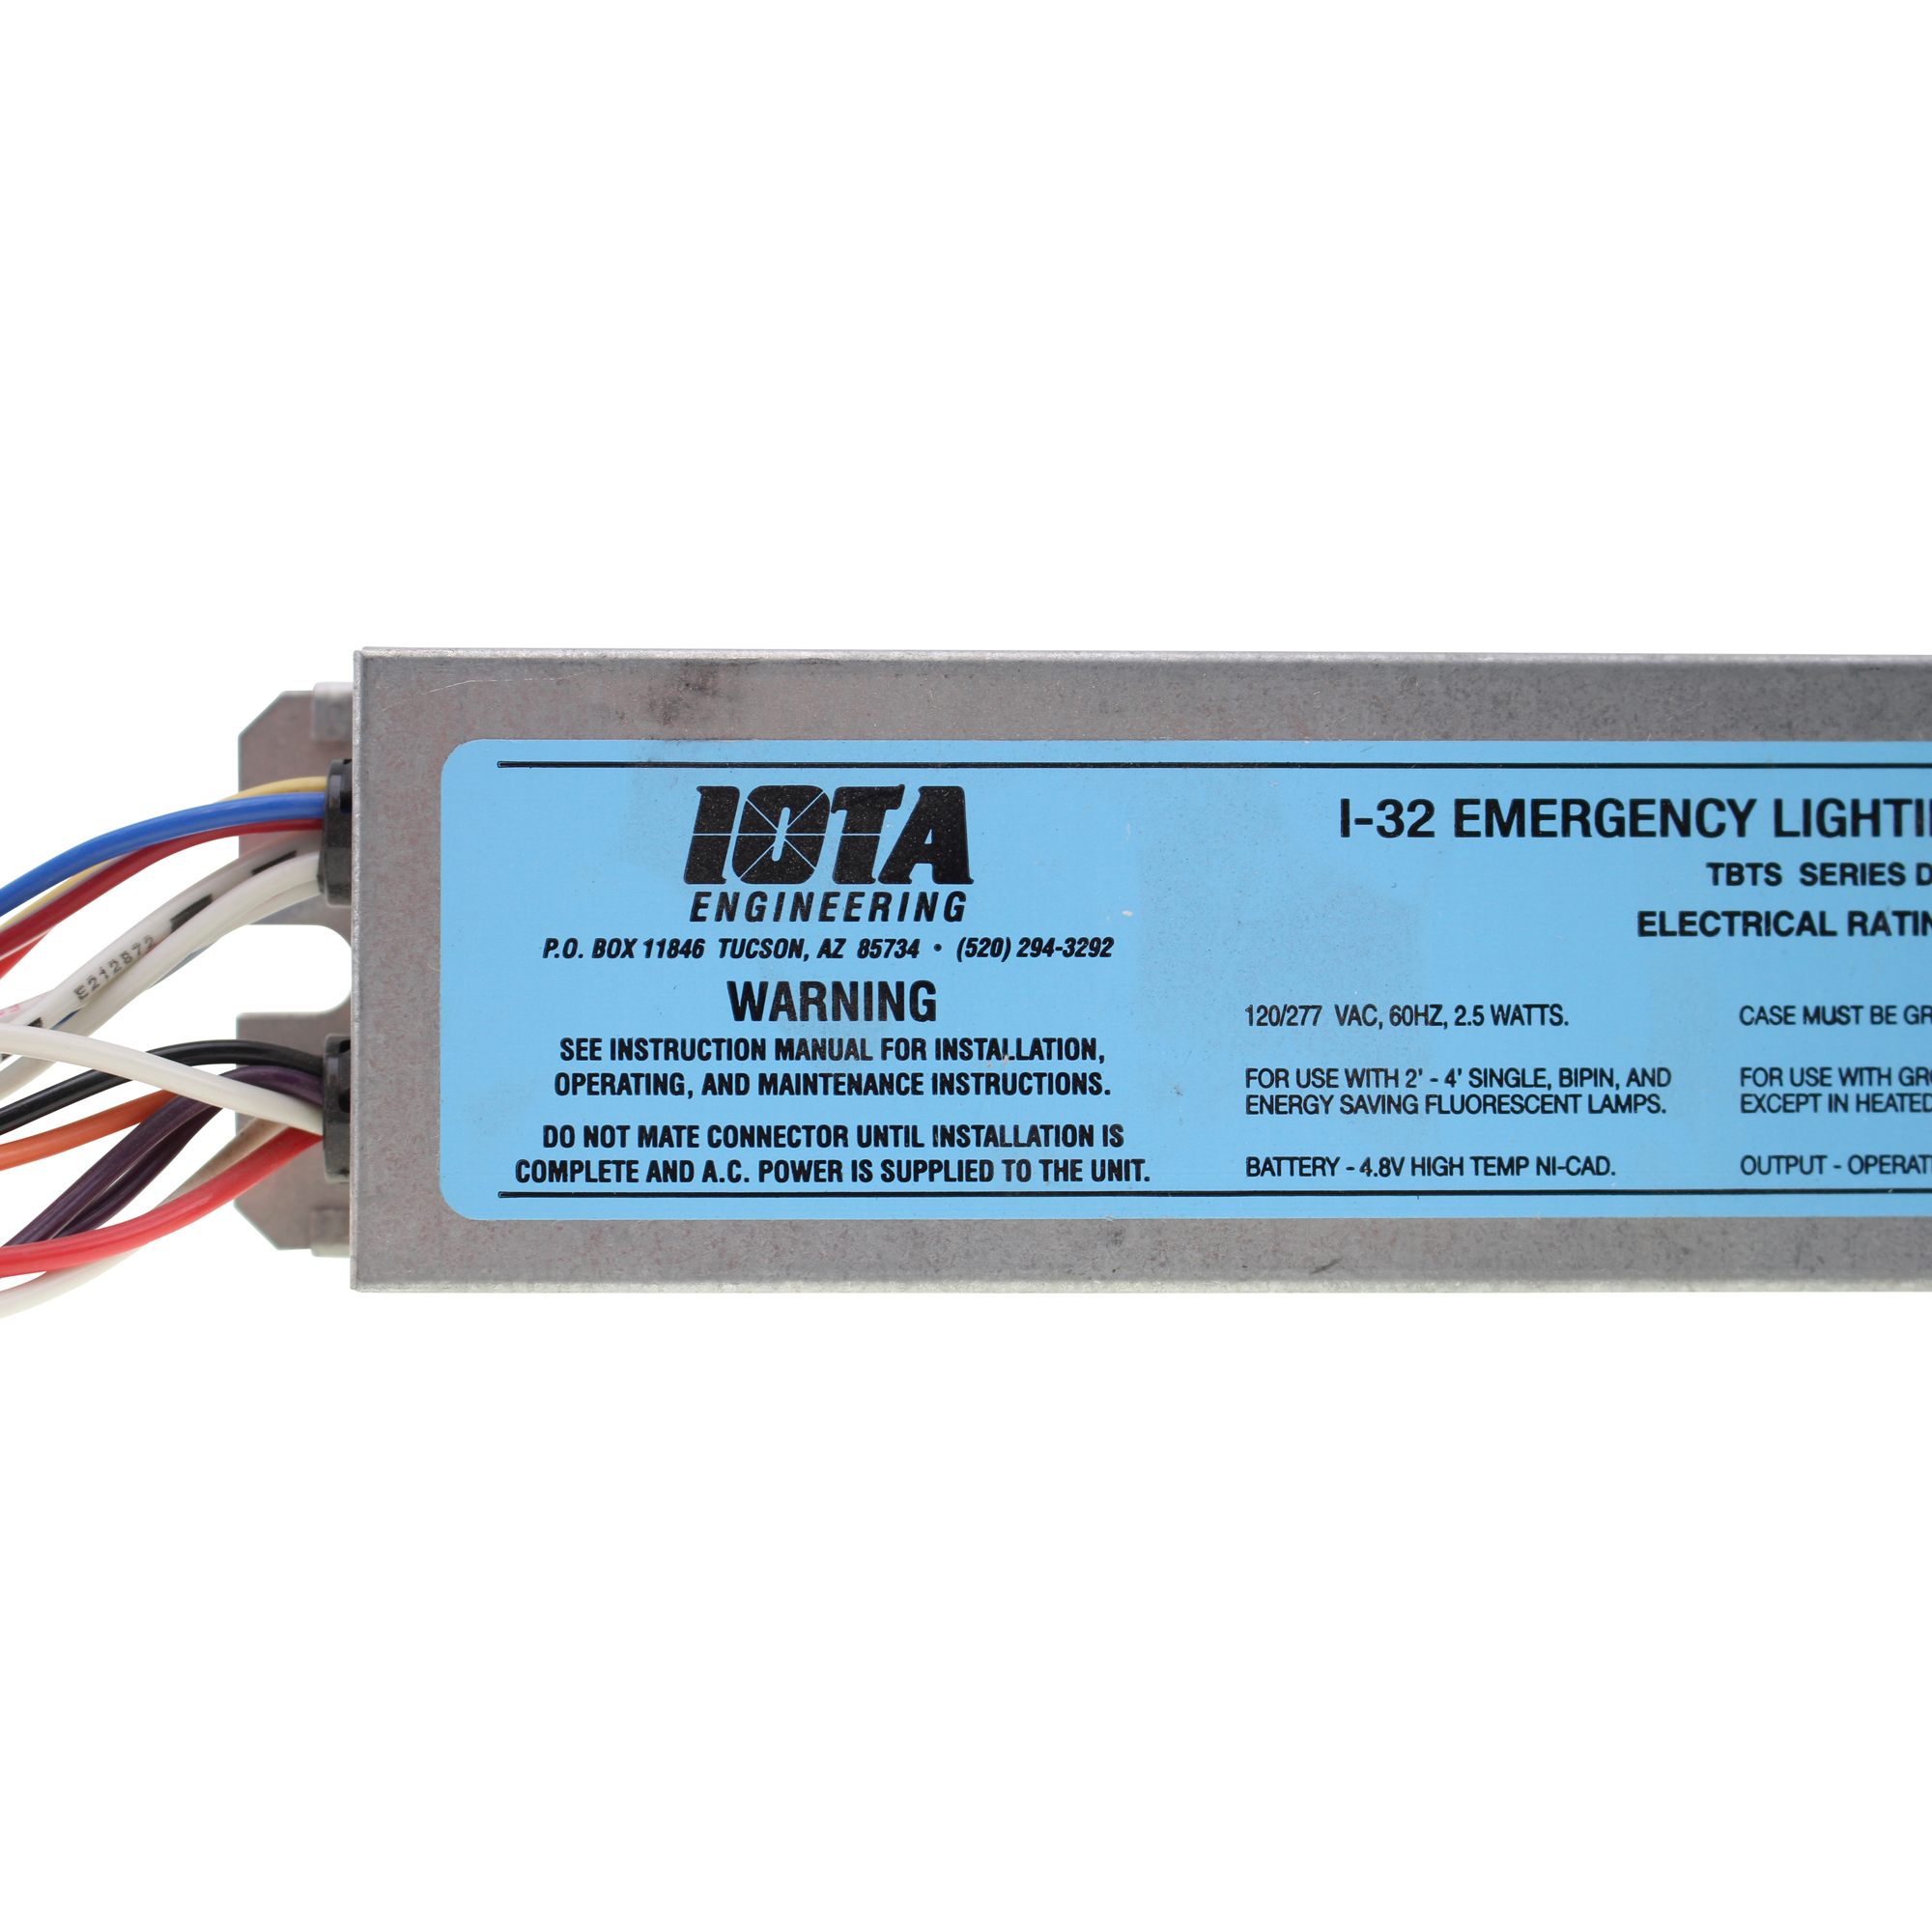 Iota 1 32 Tbts Break 2018 Light Ballast Wiring Diagram As Well Emergency Long Life High Temperature Recyclable